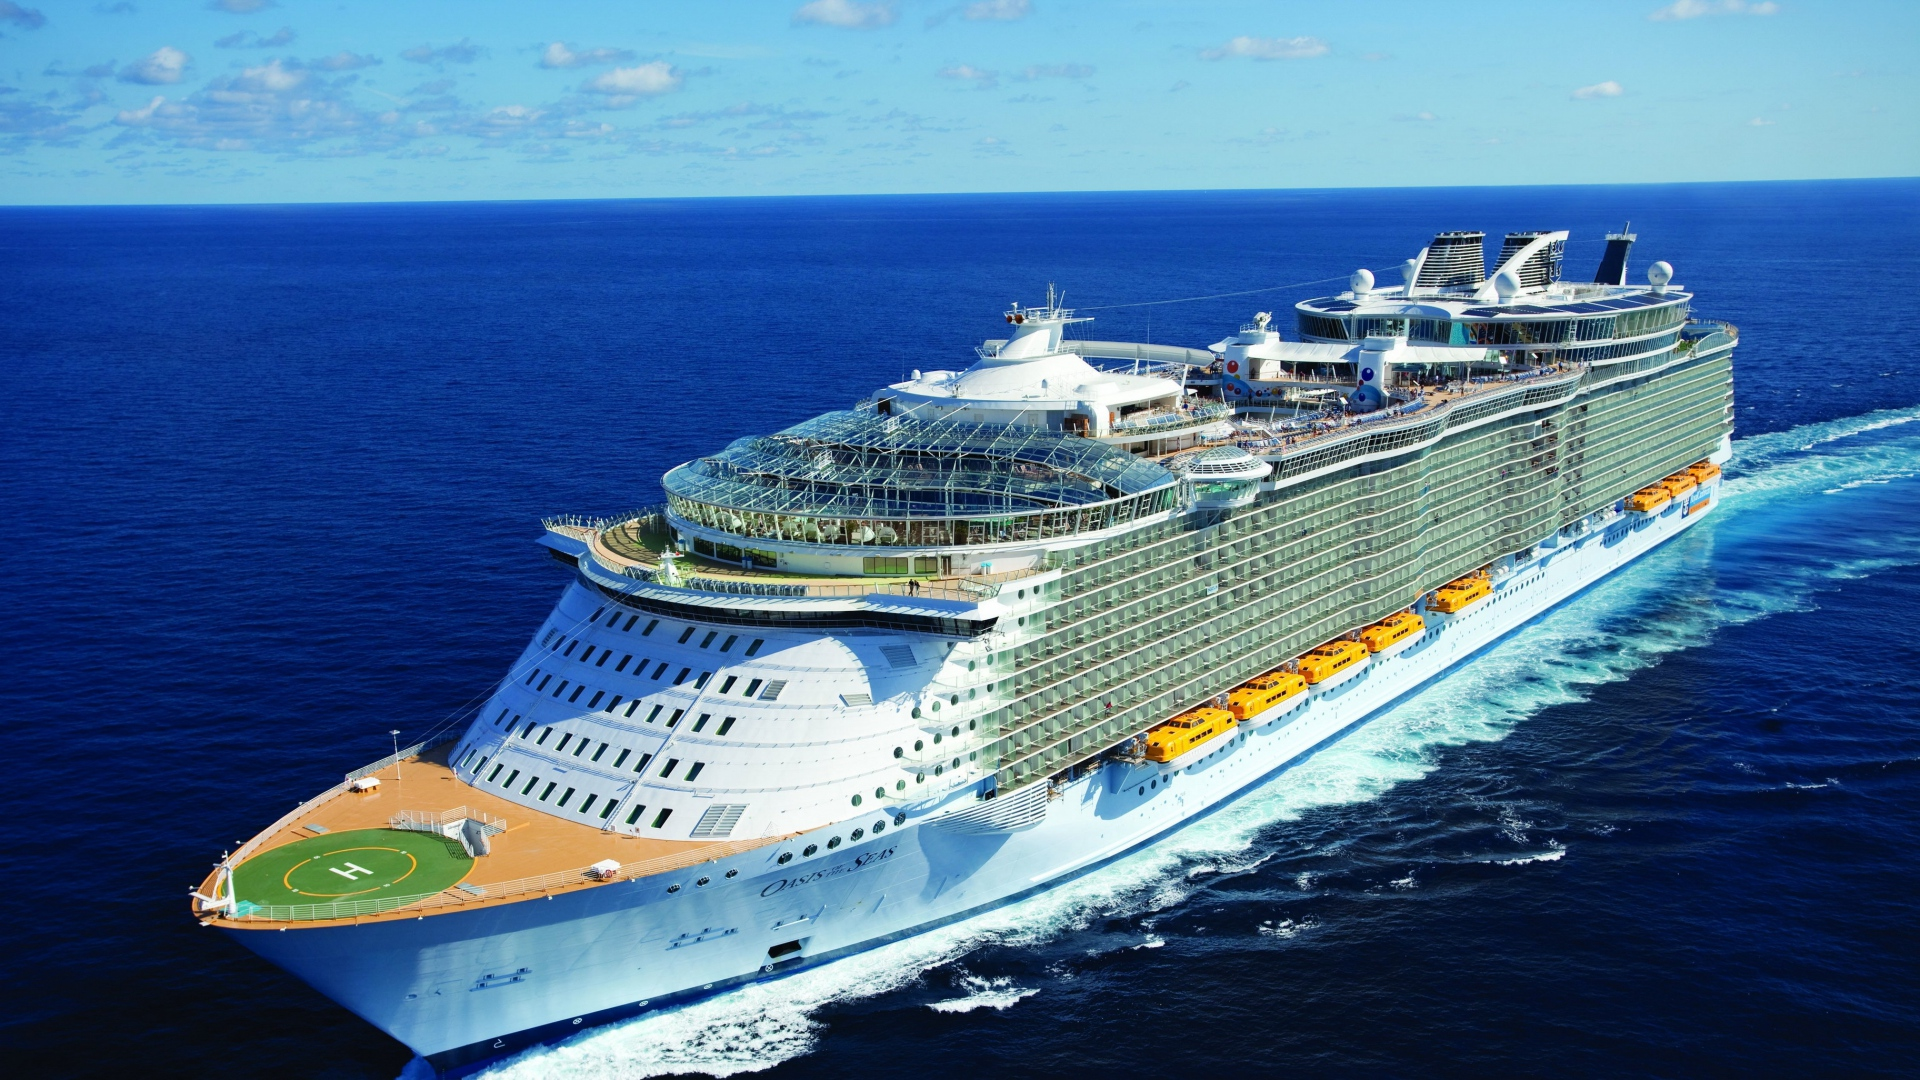 Download 1920x1080 Oasis of the seas Swirl Cruise ship Wallpaper 1920x1080